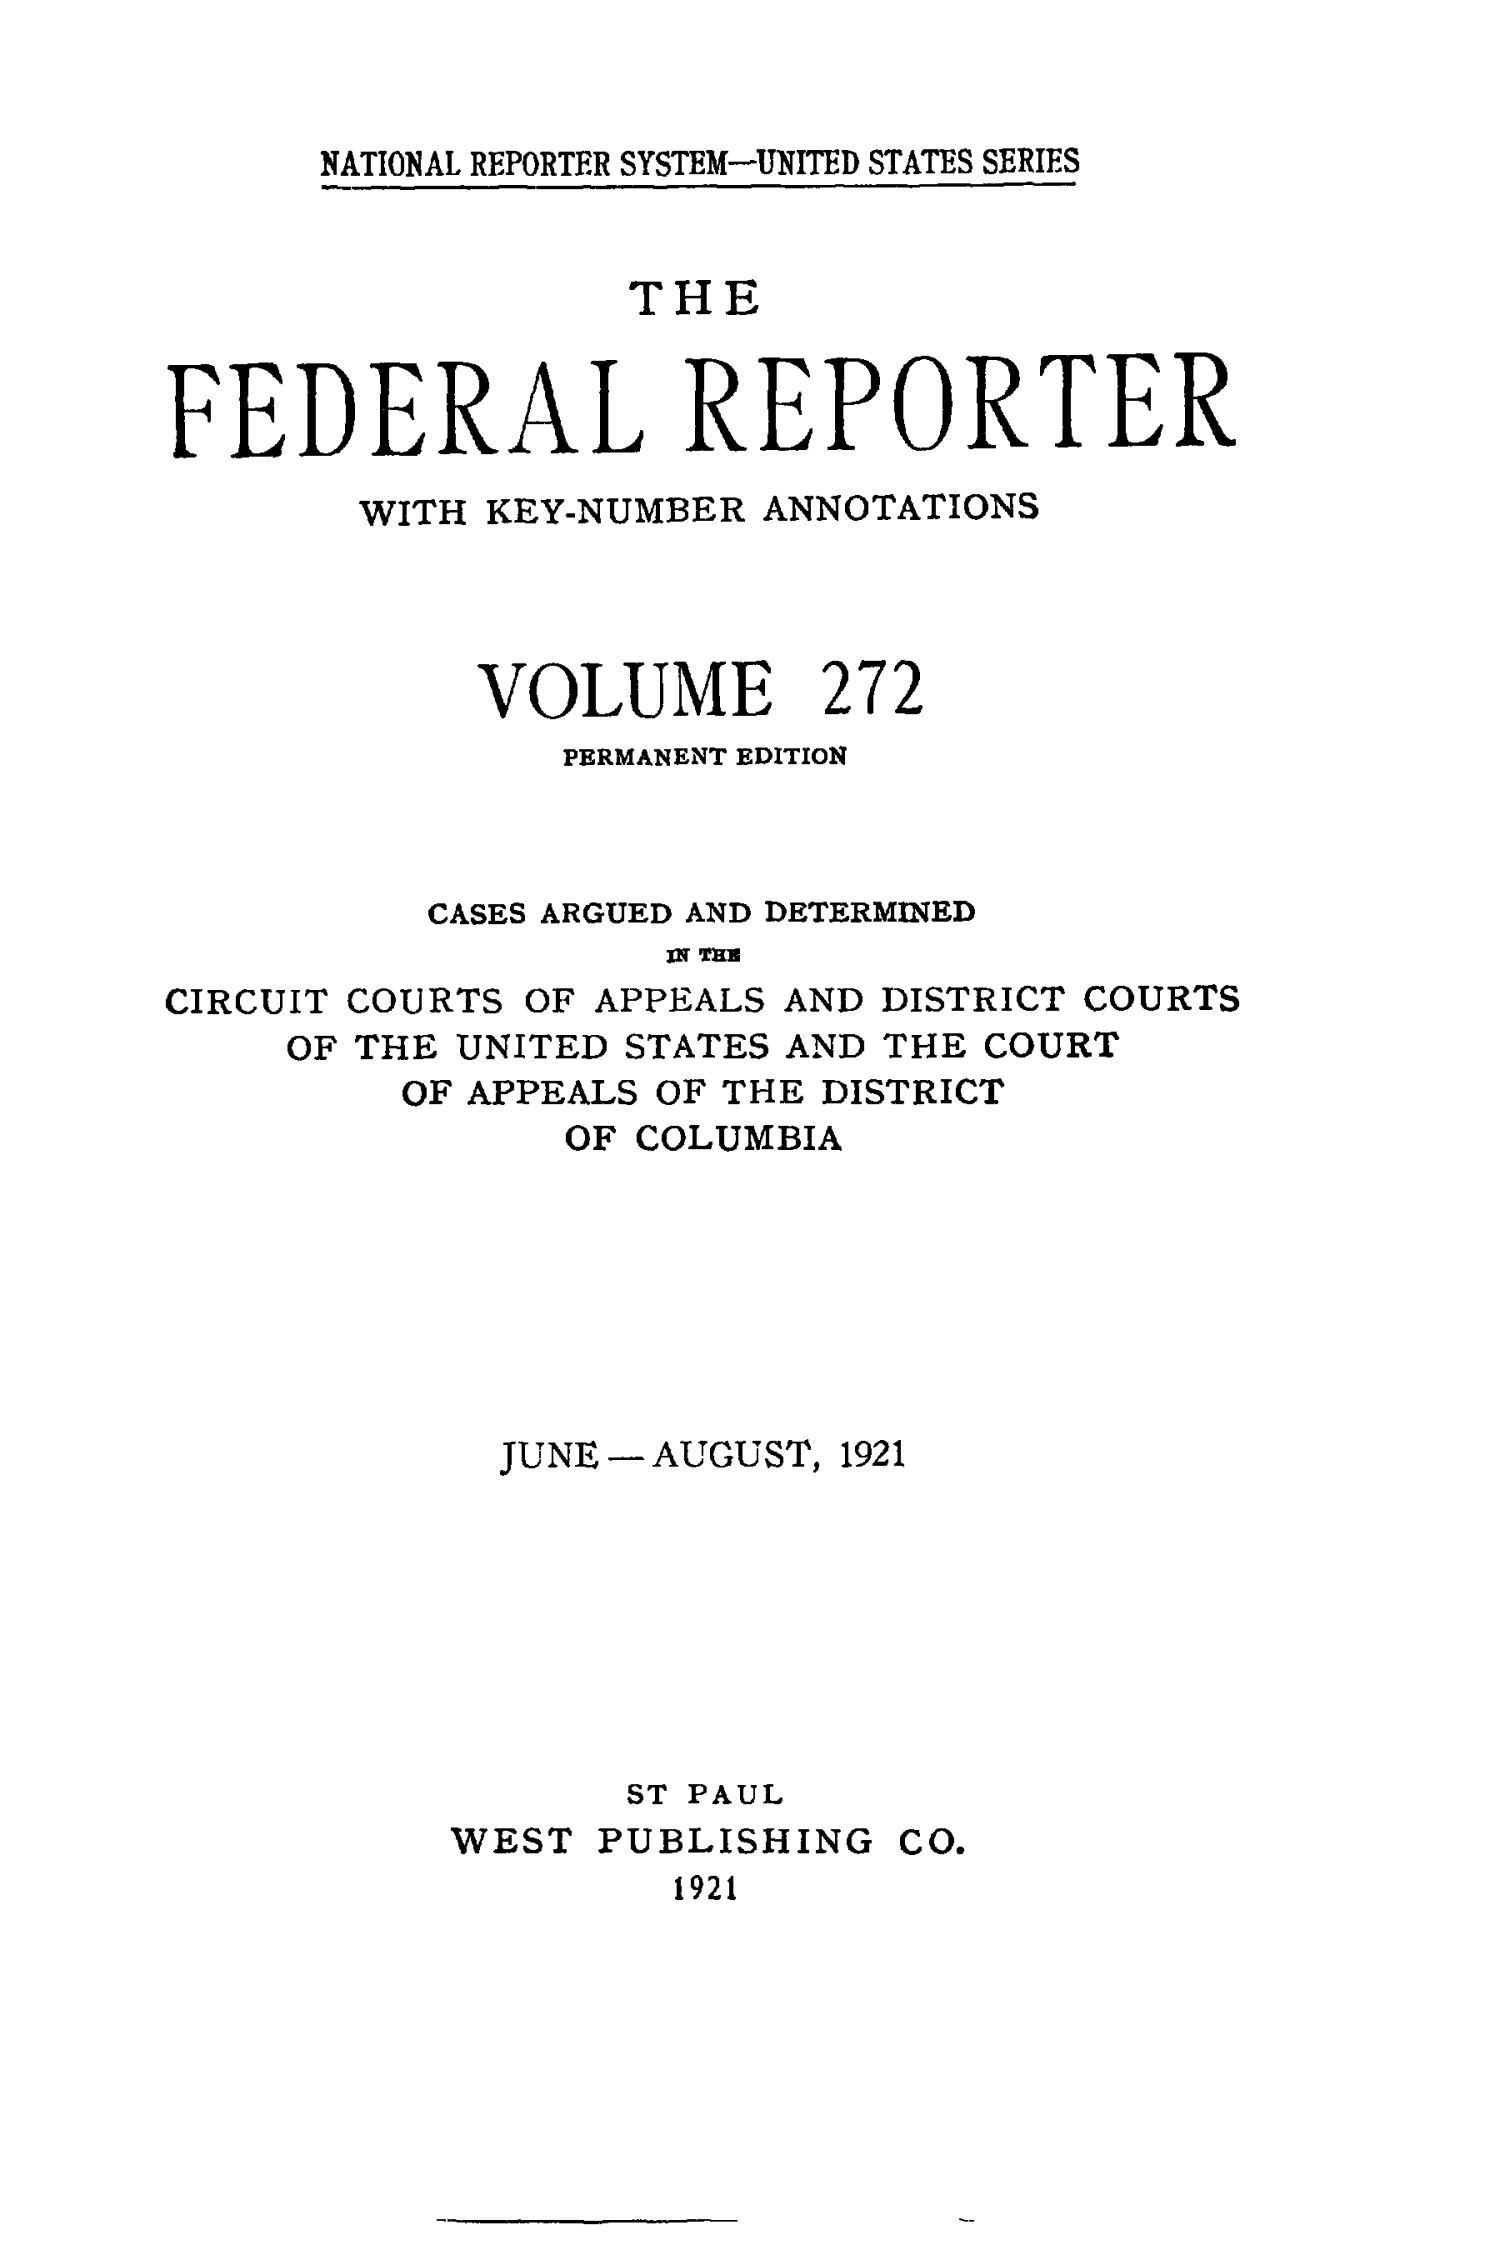 The Federal Reporter with Key-Number Annotations, Volume 272: Cases Argued and Determined in the Circuit Courts of Appeals and District Courts of the United States and the Court of Appeals in the District of Columbia,  June-August, 1921.                                                                                                      Title Page